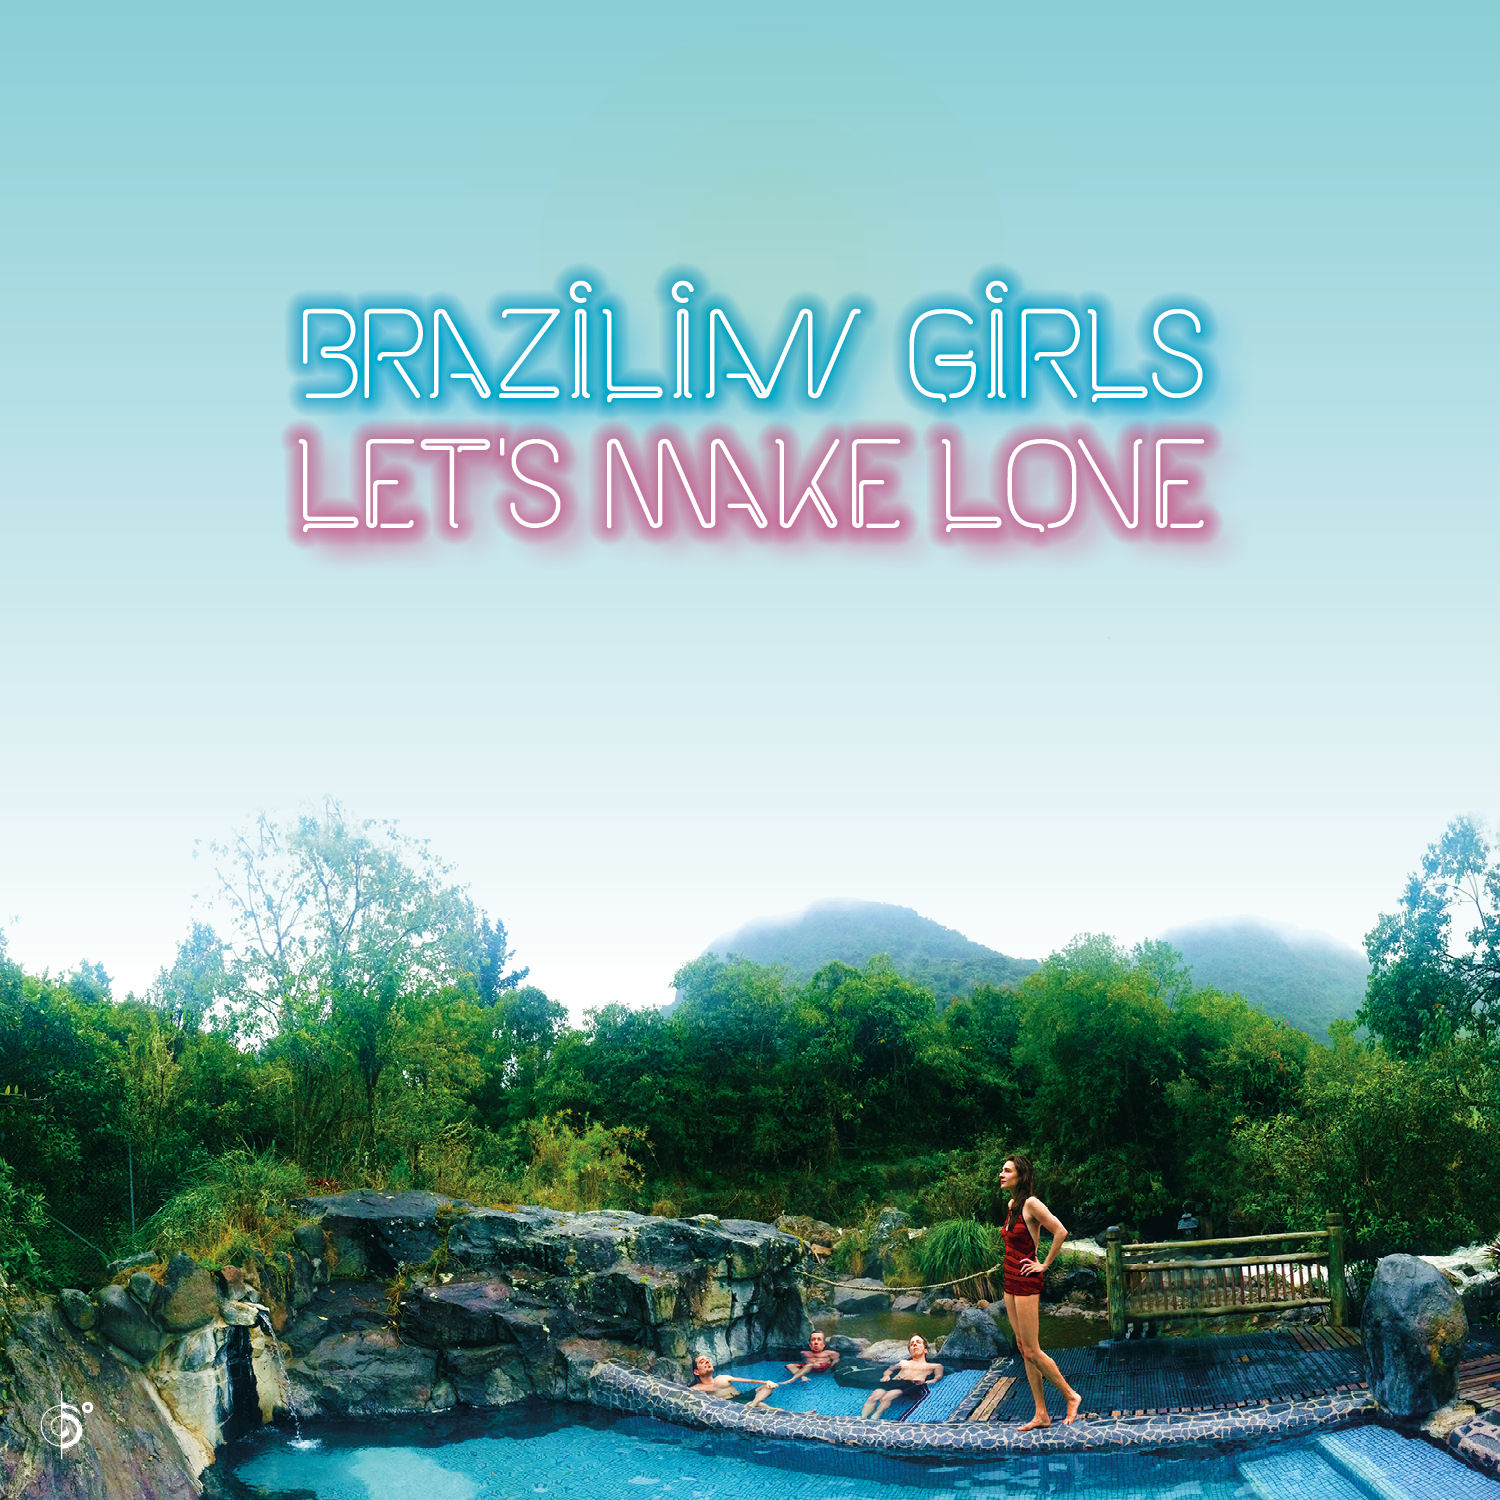 Brazilian Girls – Let's make love